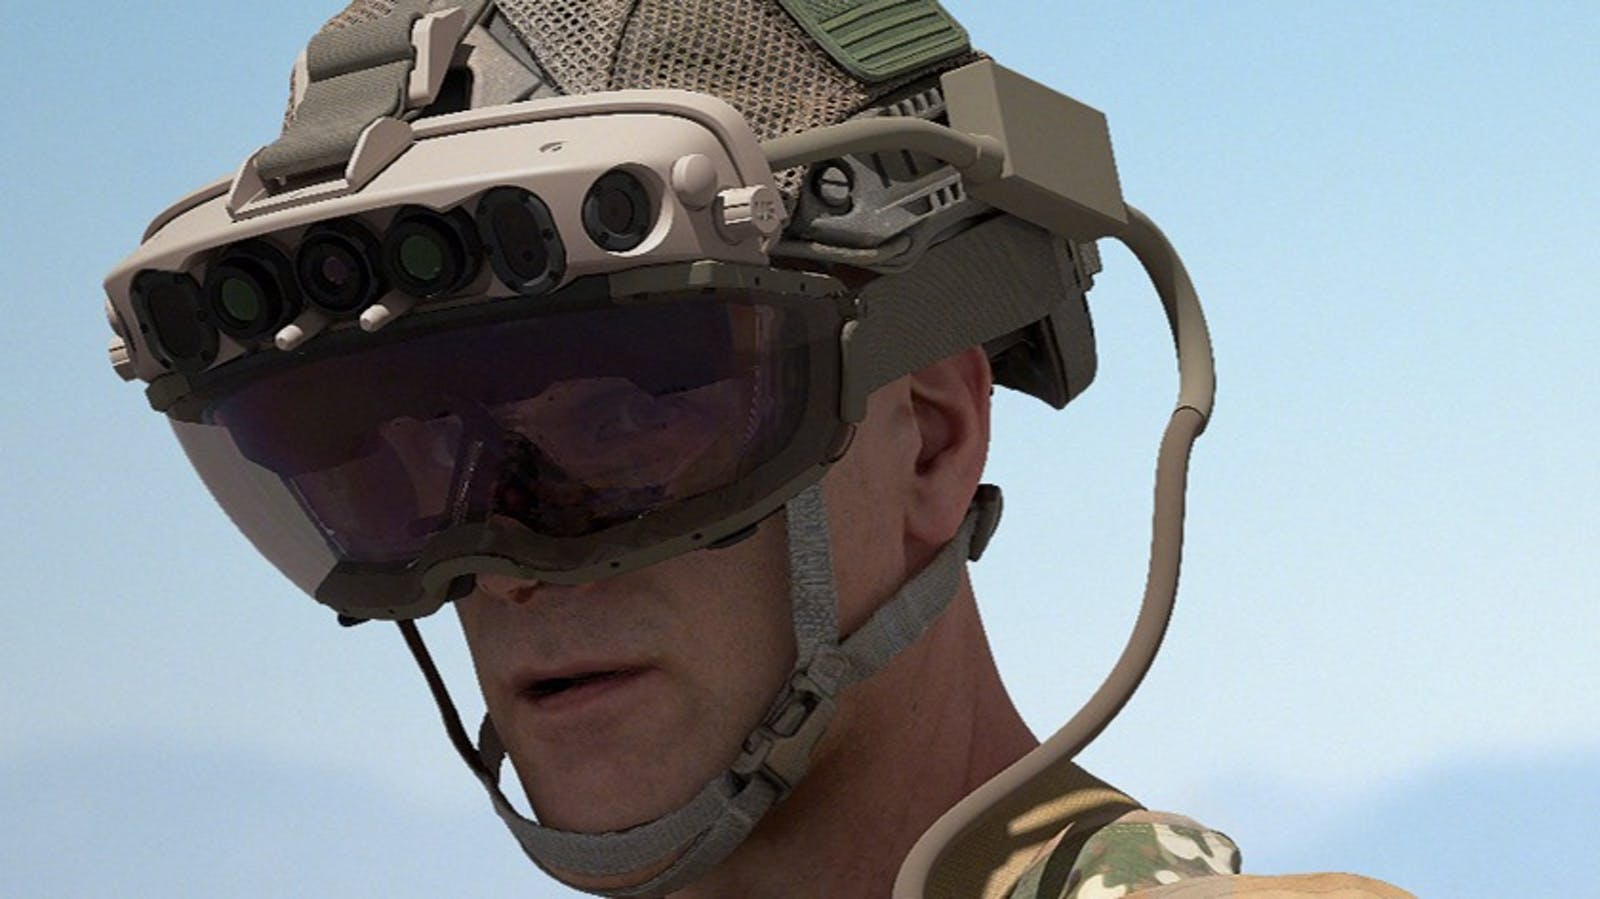 Microsoft's HoloLens-based headset for the military. Image: Microsoft